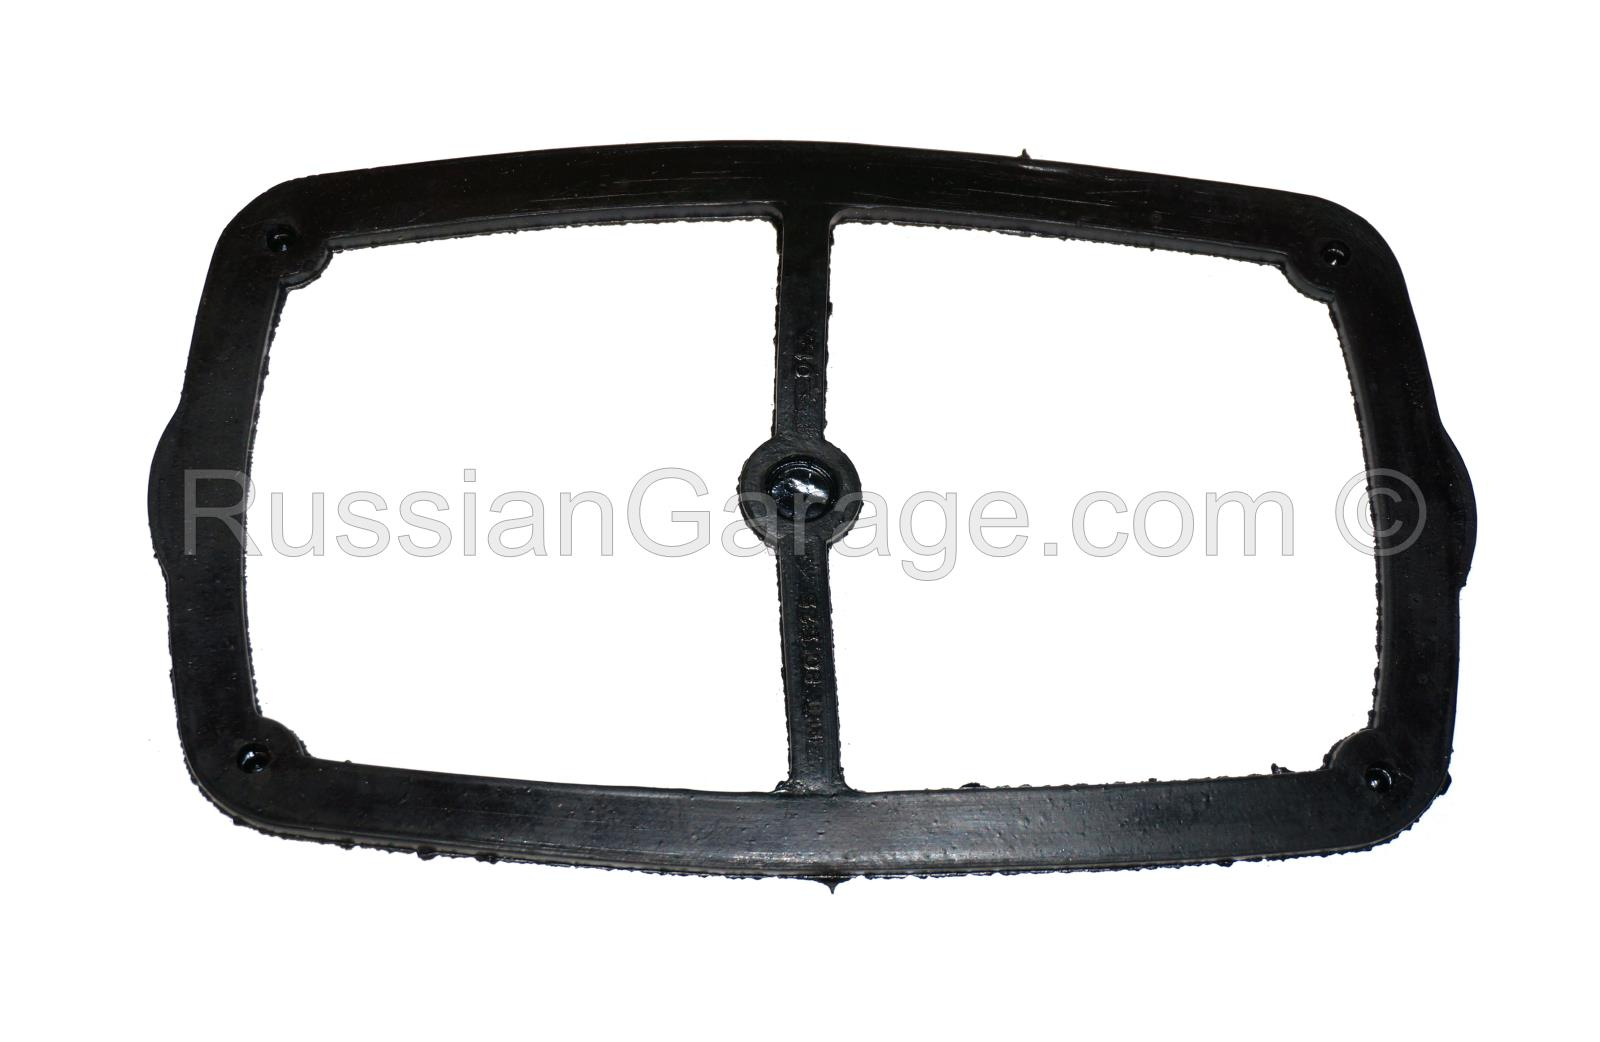 Cylinder head rocker cover gasket DNEPR